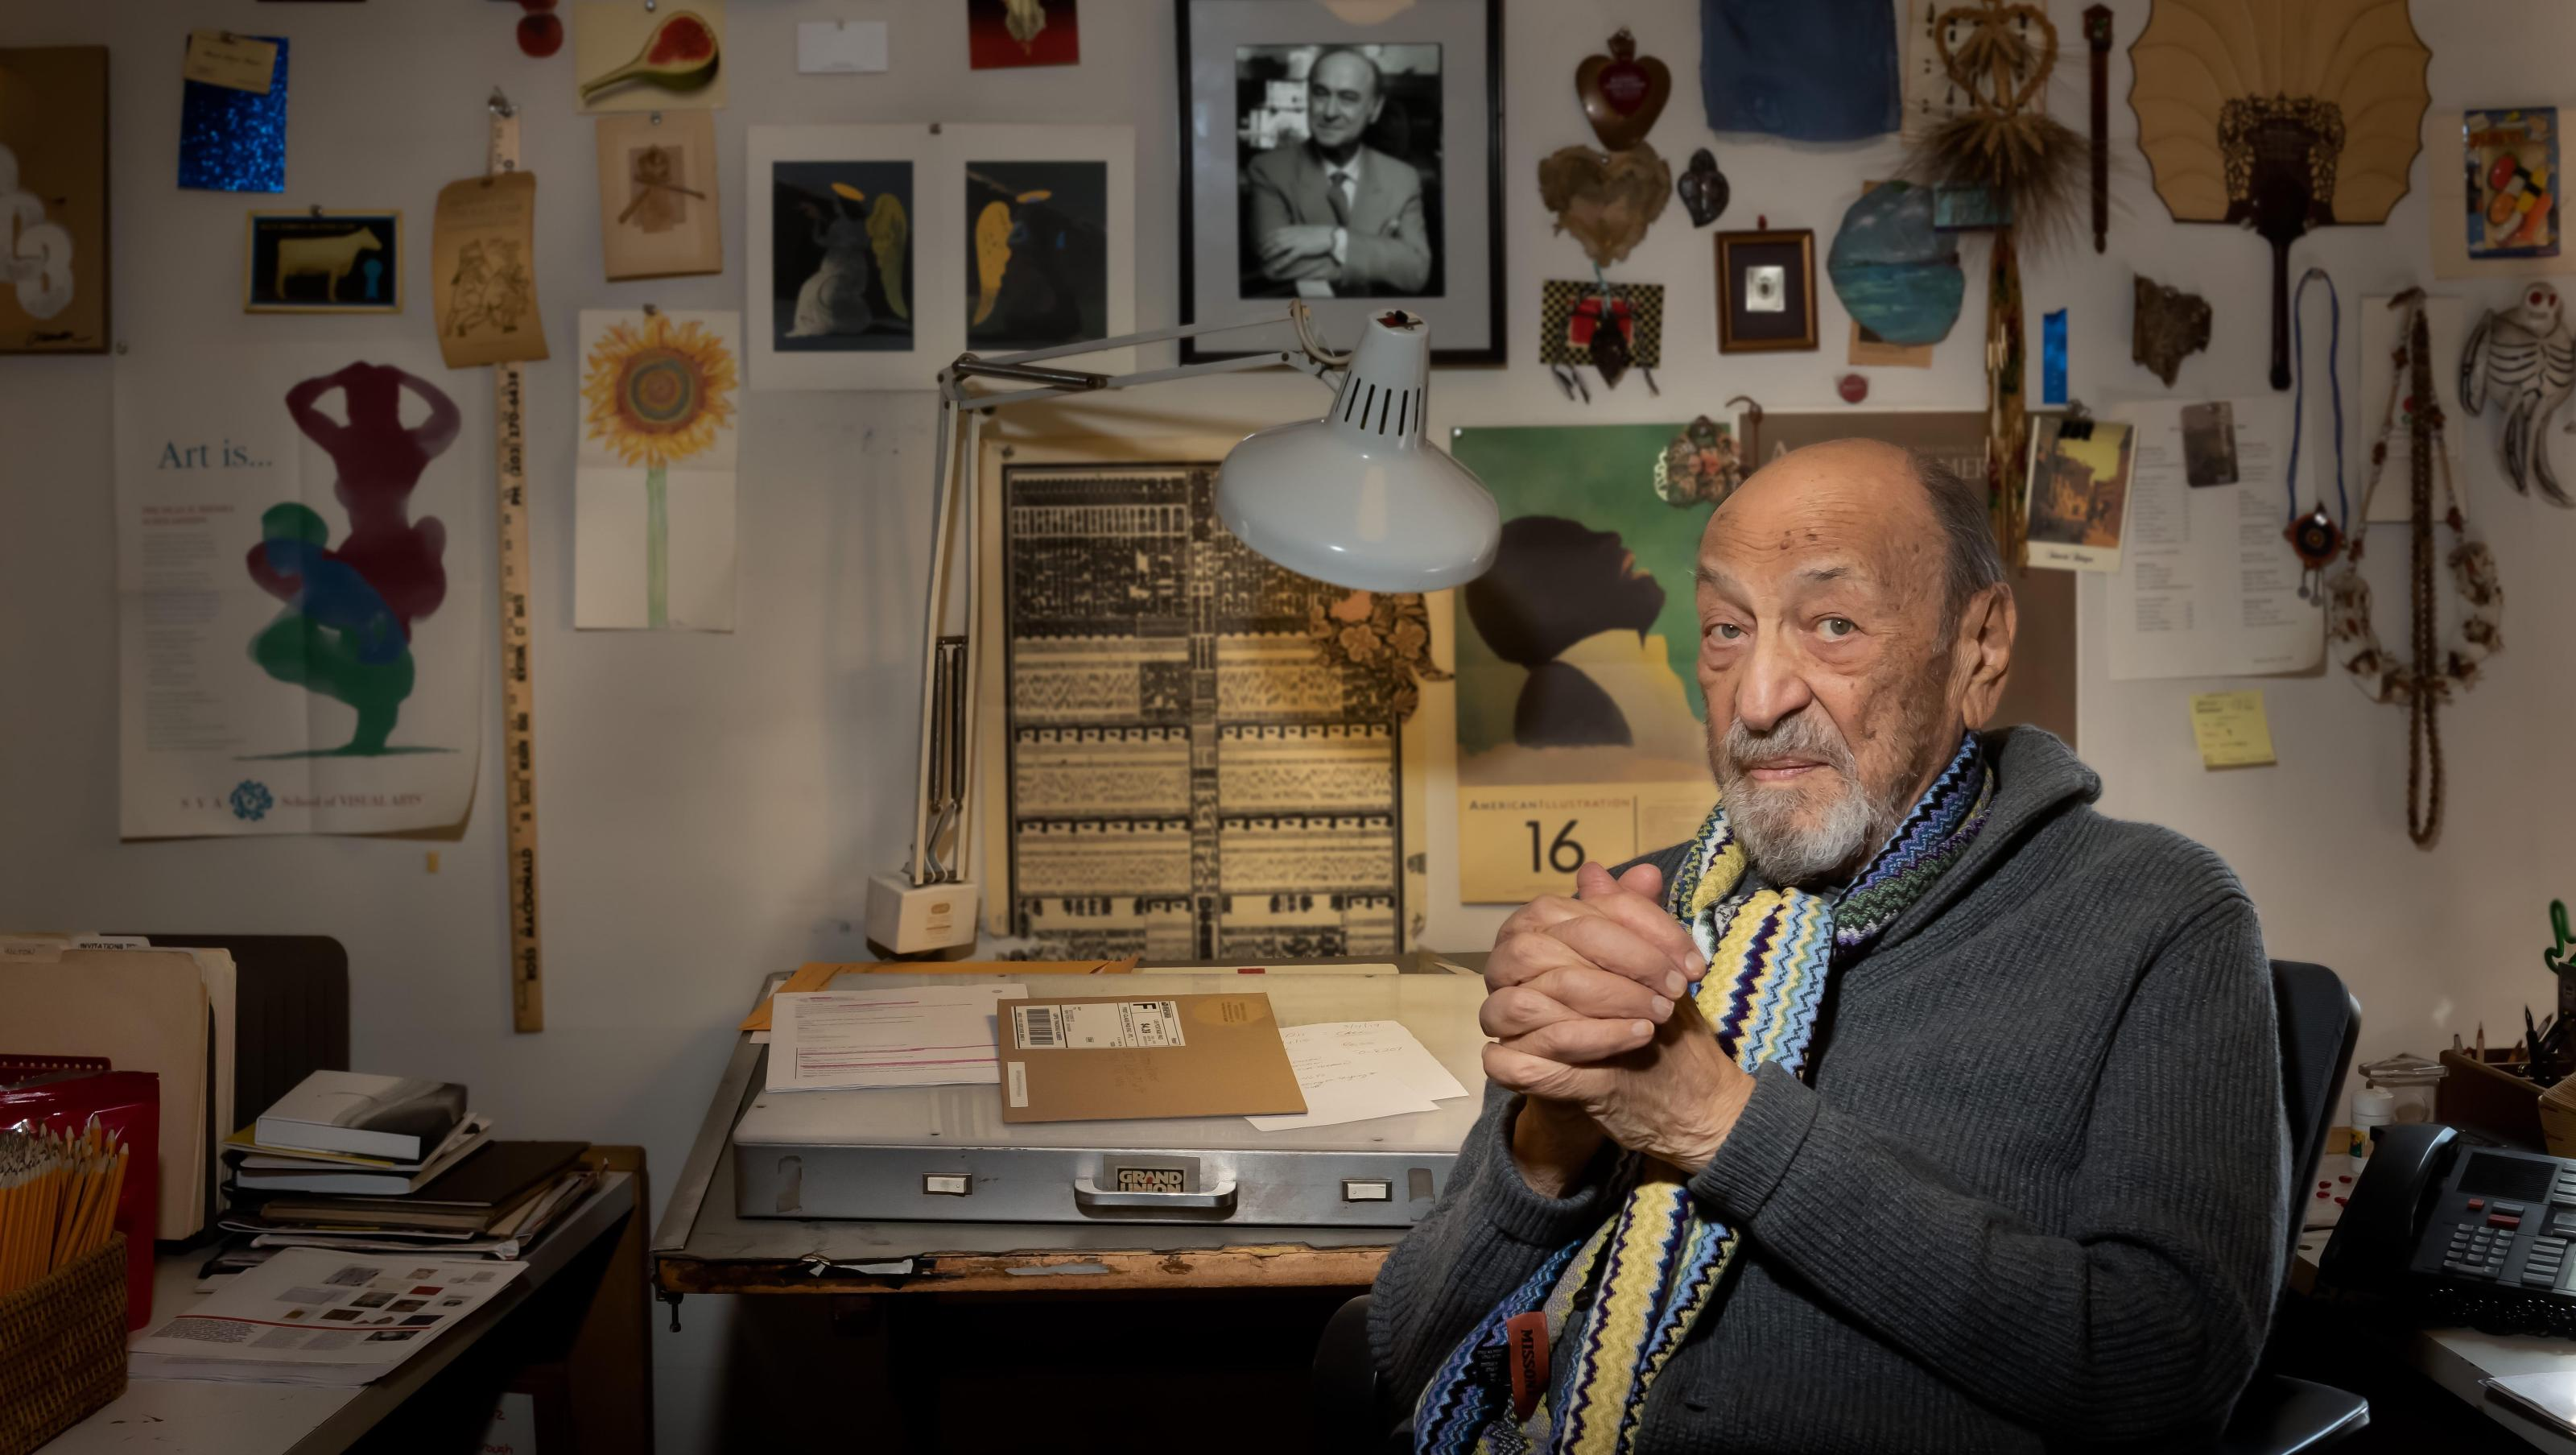 Milton Glaser is spending his 90th birthday doing what he loves most: working